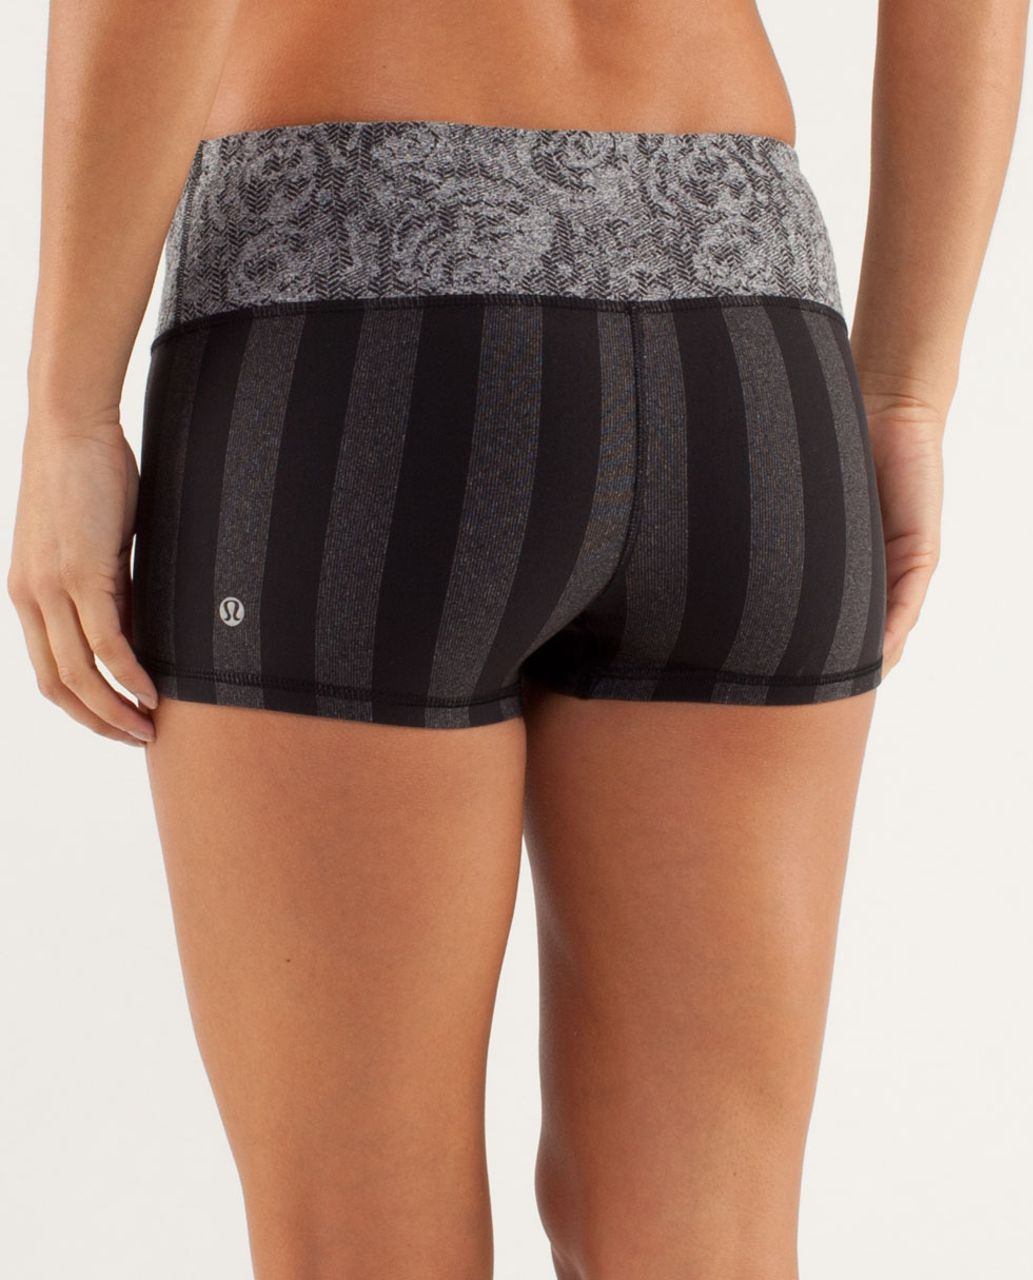 Lululemon Boogie Short - Micro Macro Black Heathered Black / Rose Herringbone Black / Black